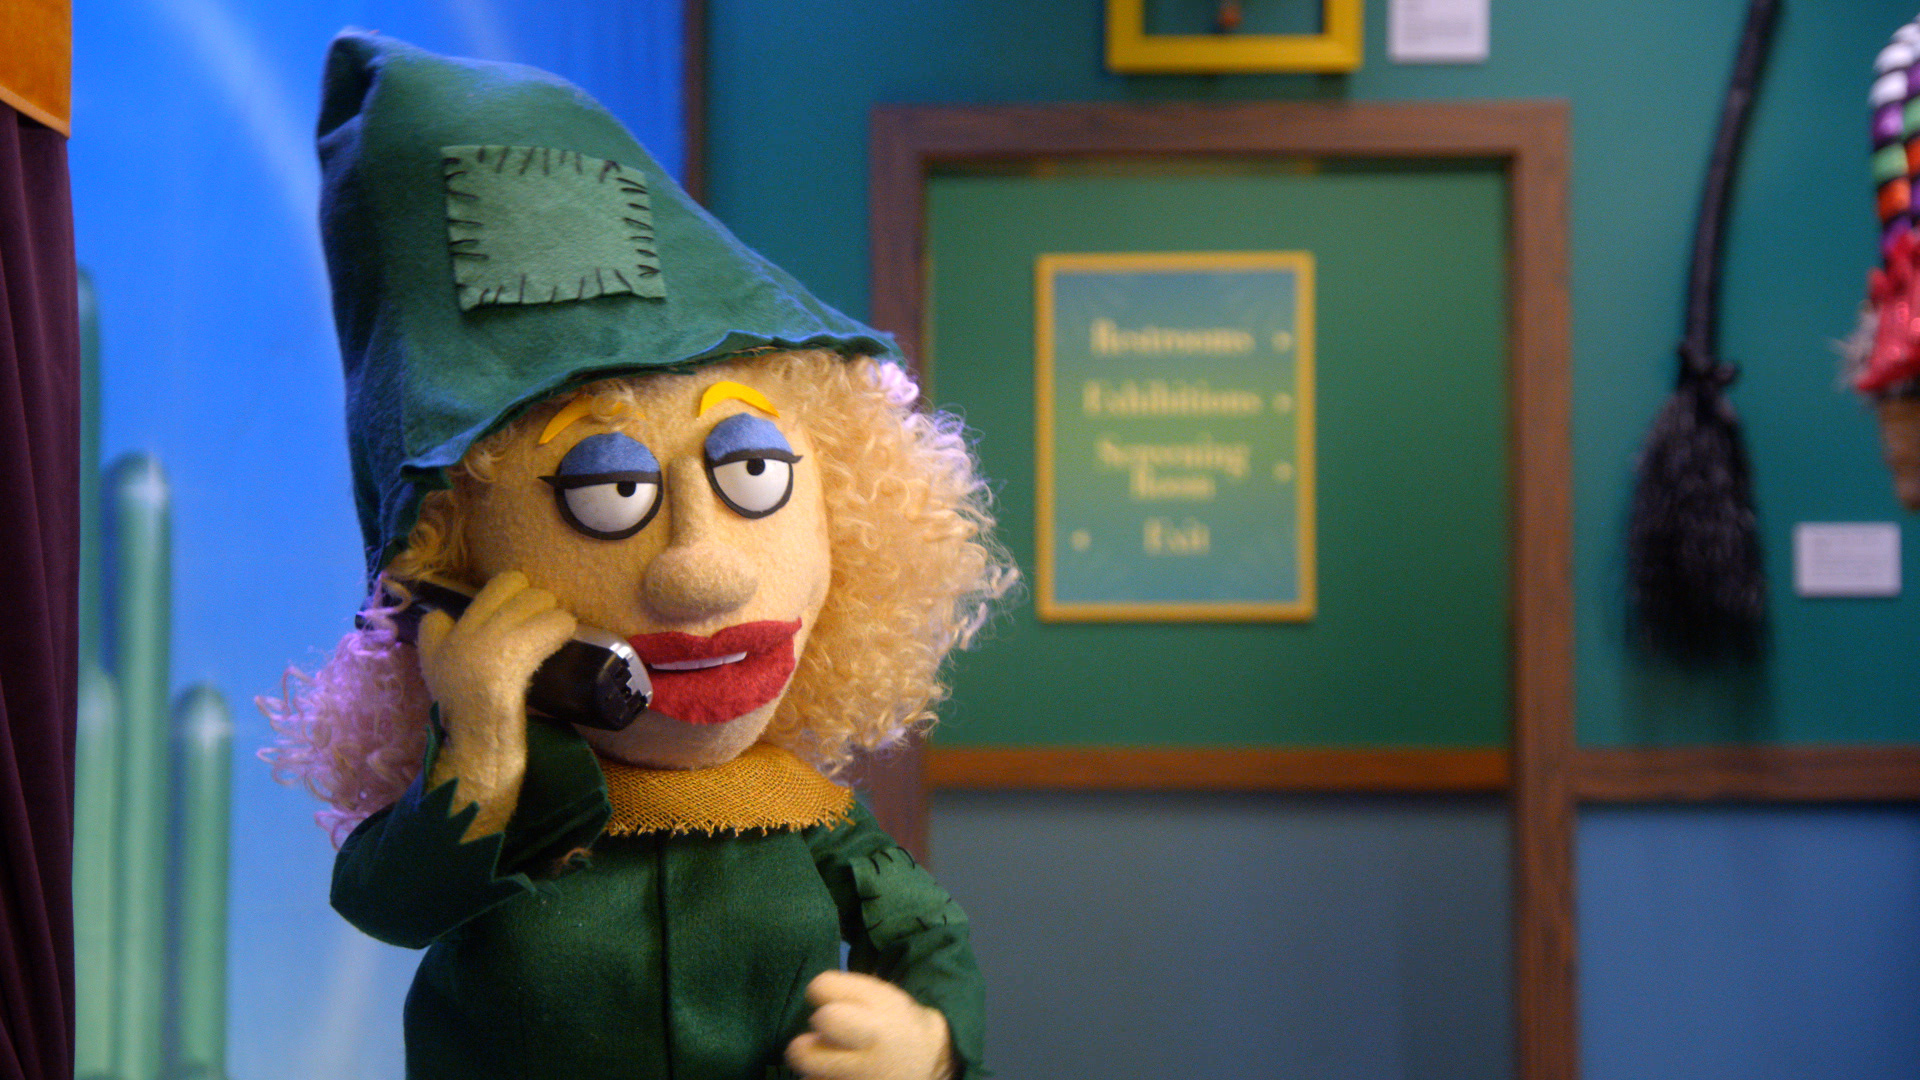 A female puppet dressed as a witch aswers a prank call from Thomas Lennon in a scene from Crank Yankers edited by Todd Bishop